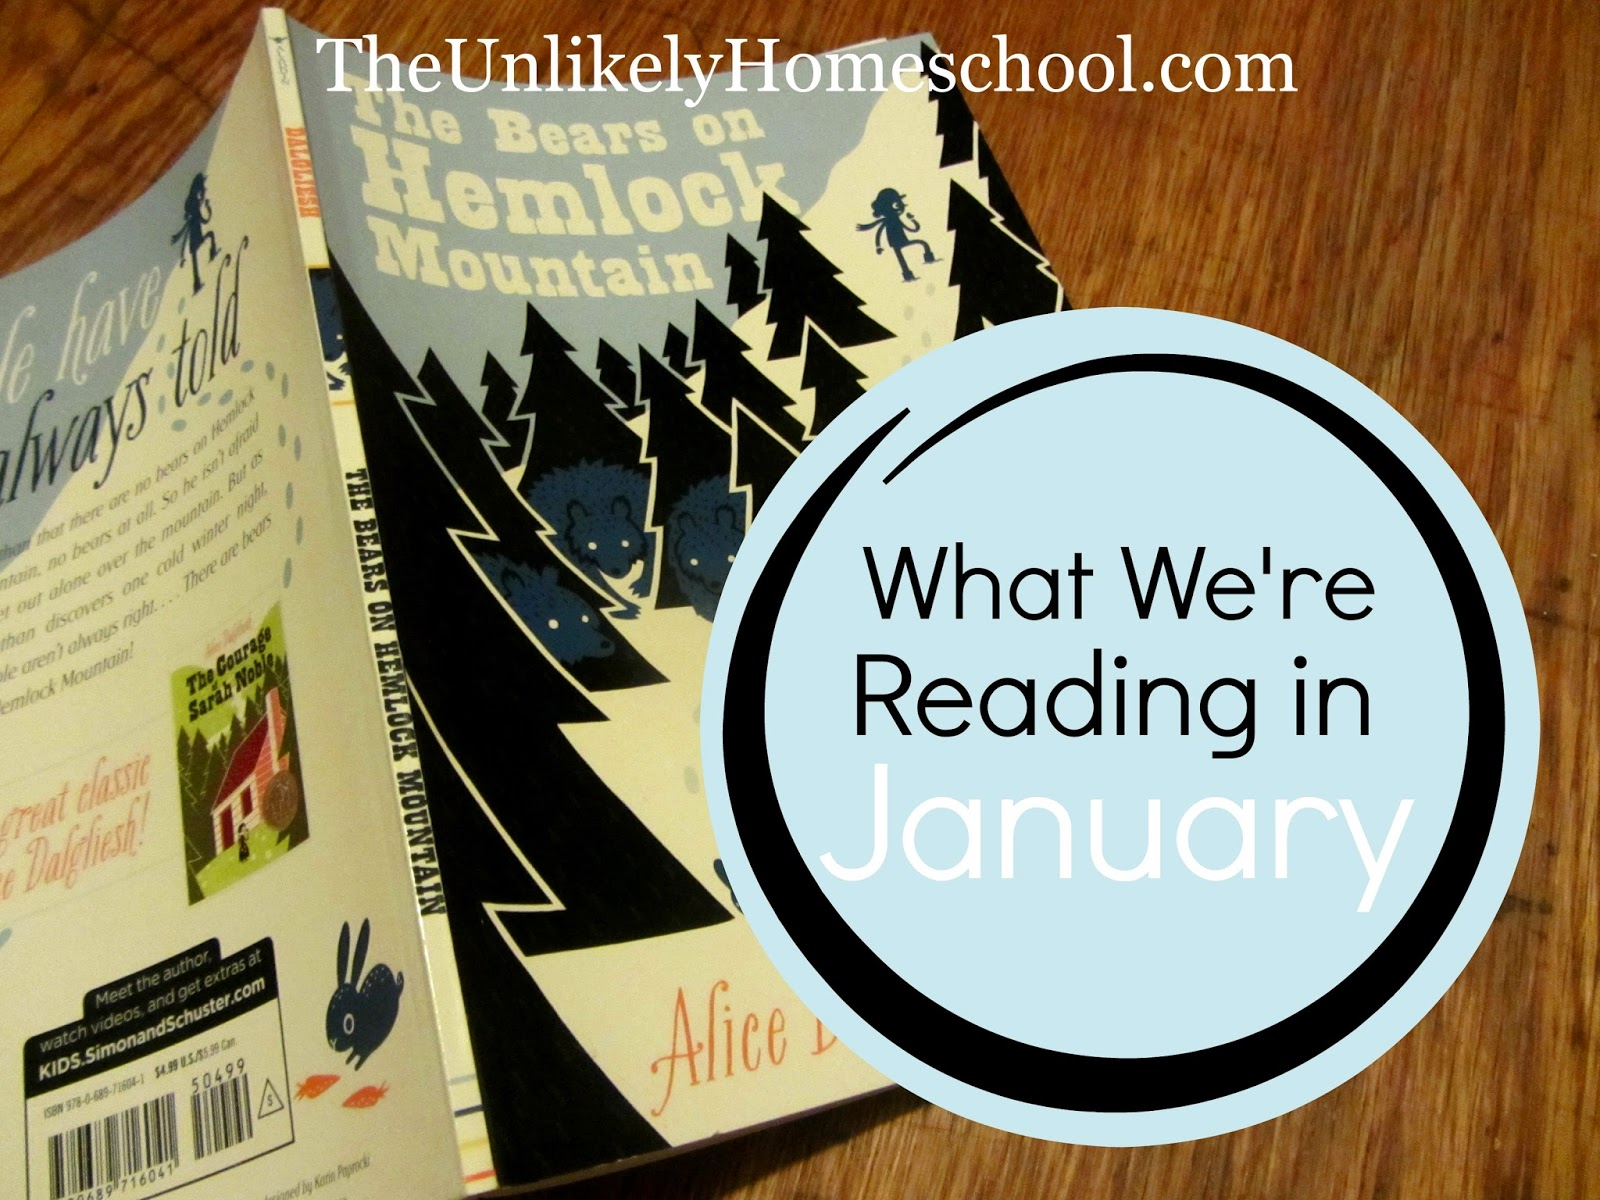 What We're Reading in January {The Unlikely Homeschool}